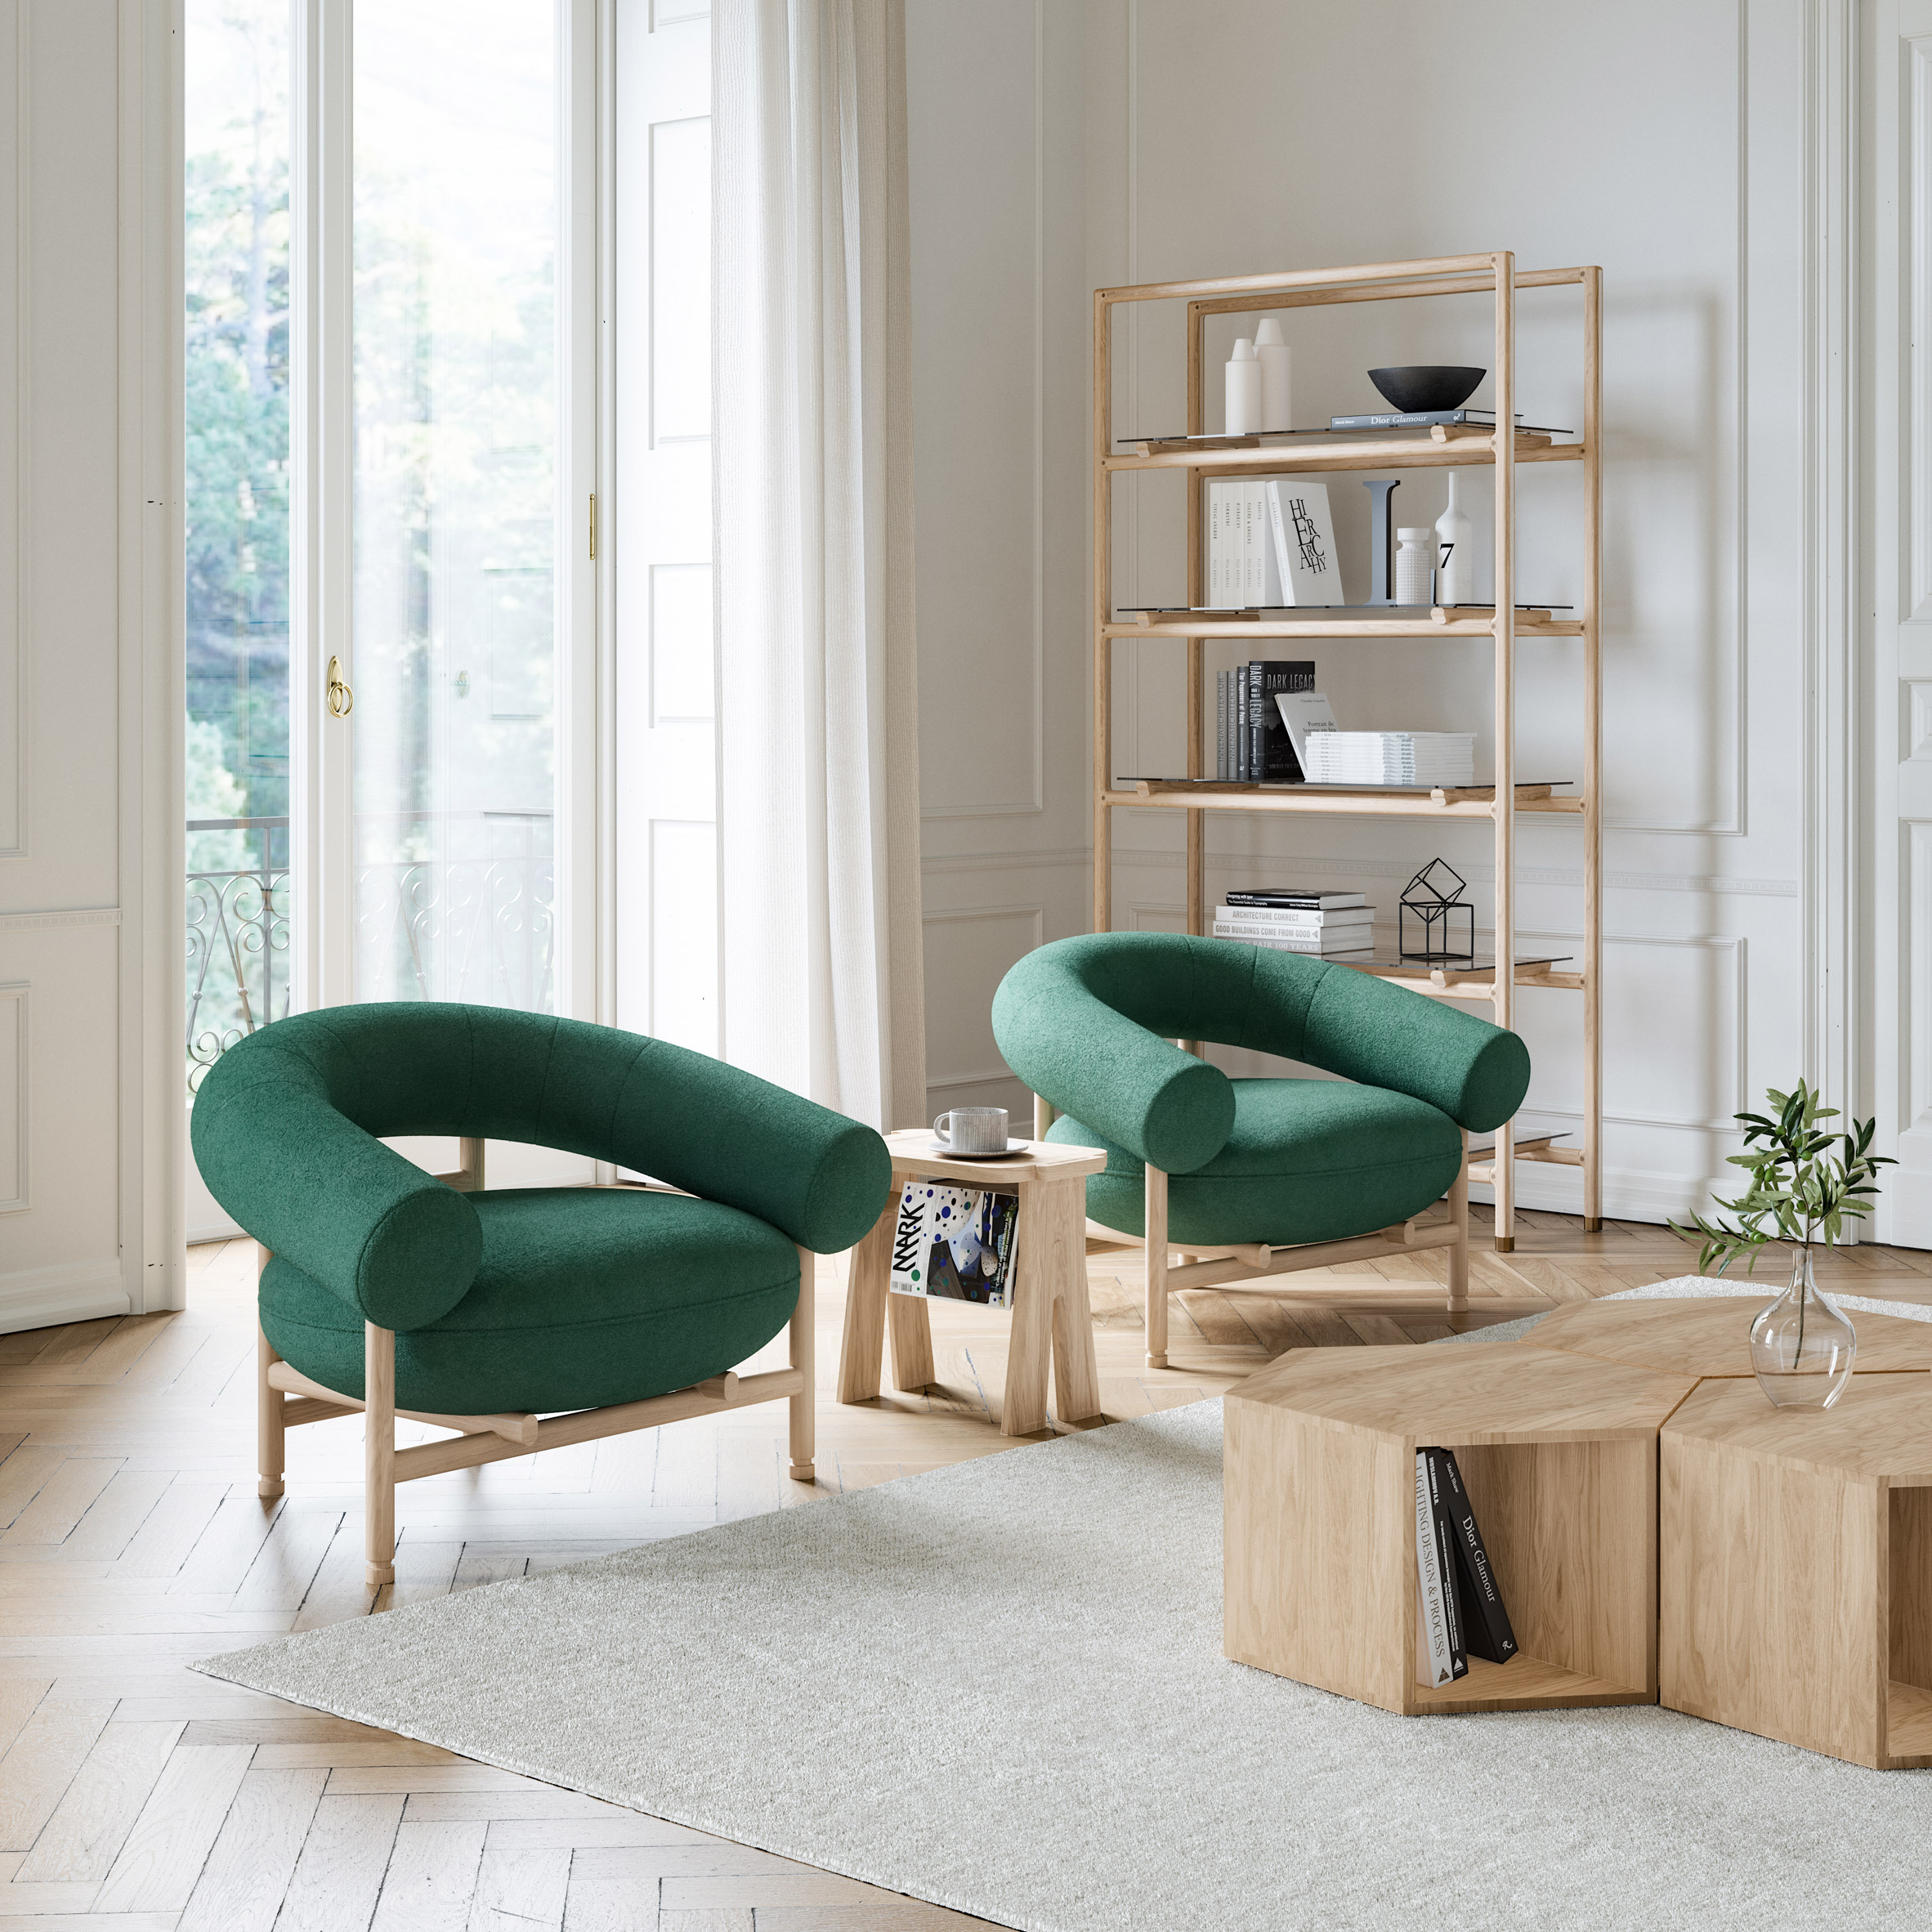 Loop lounge chair by David Girelli for Wewood